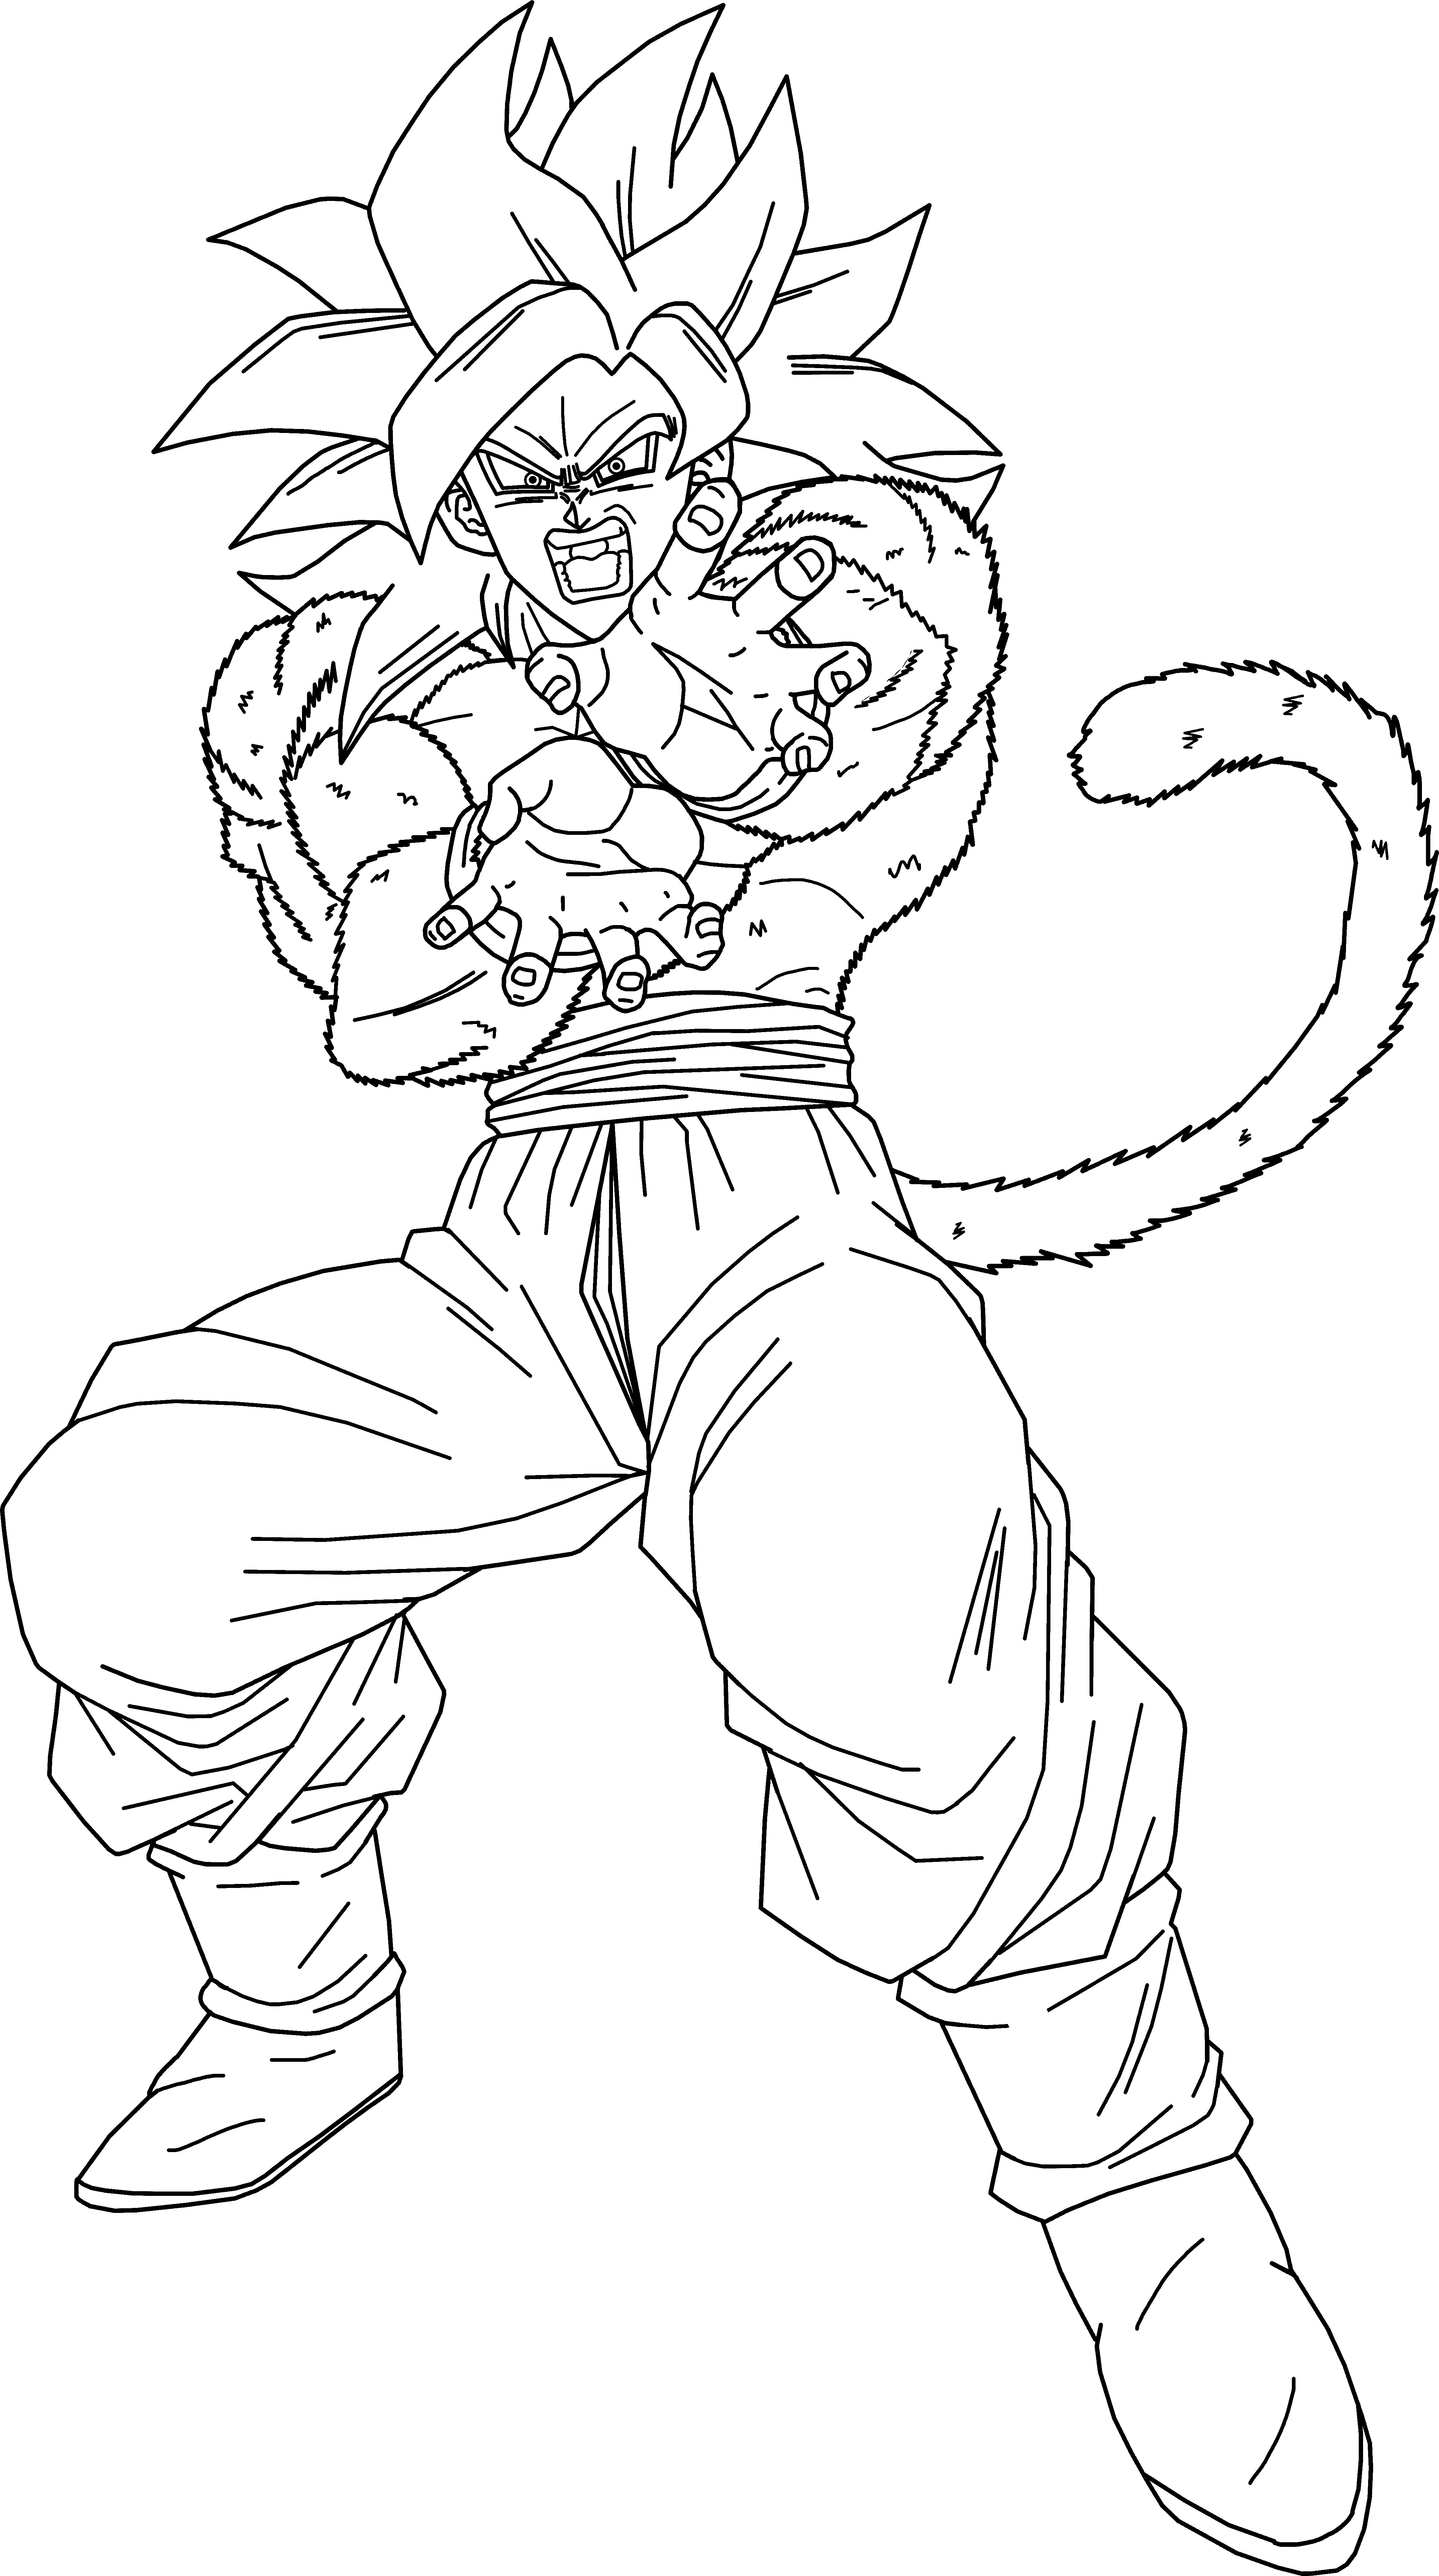 4303x7705 How To Draw Goku Super Saiyan 4 Ssj4 Youtube Cool Drawings